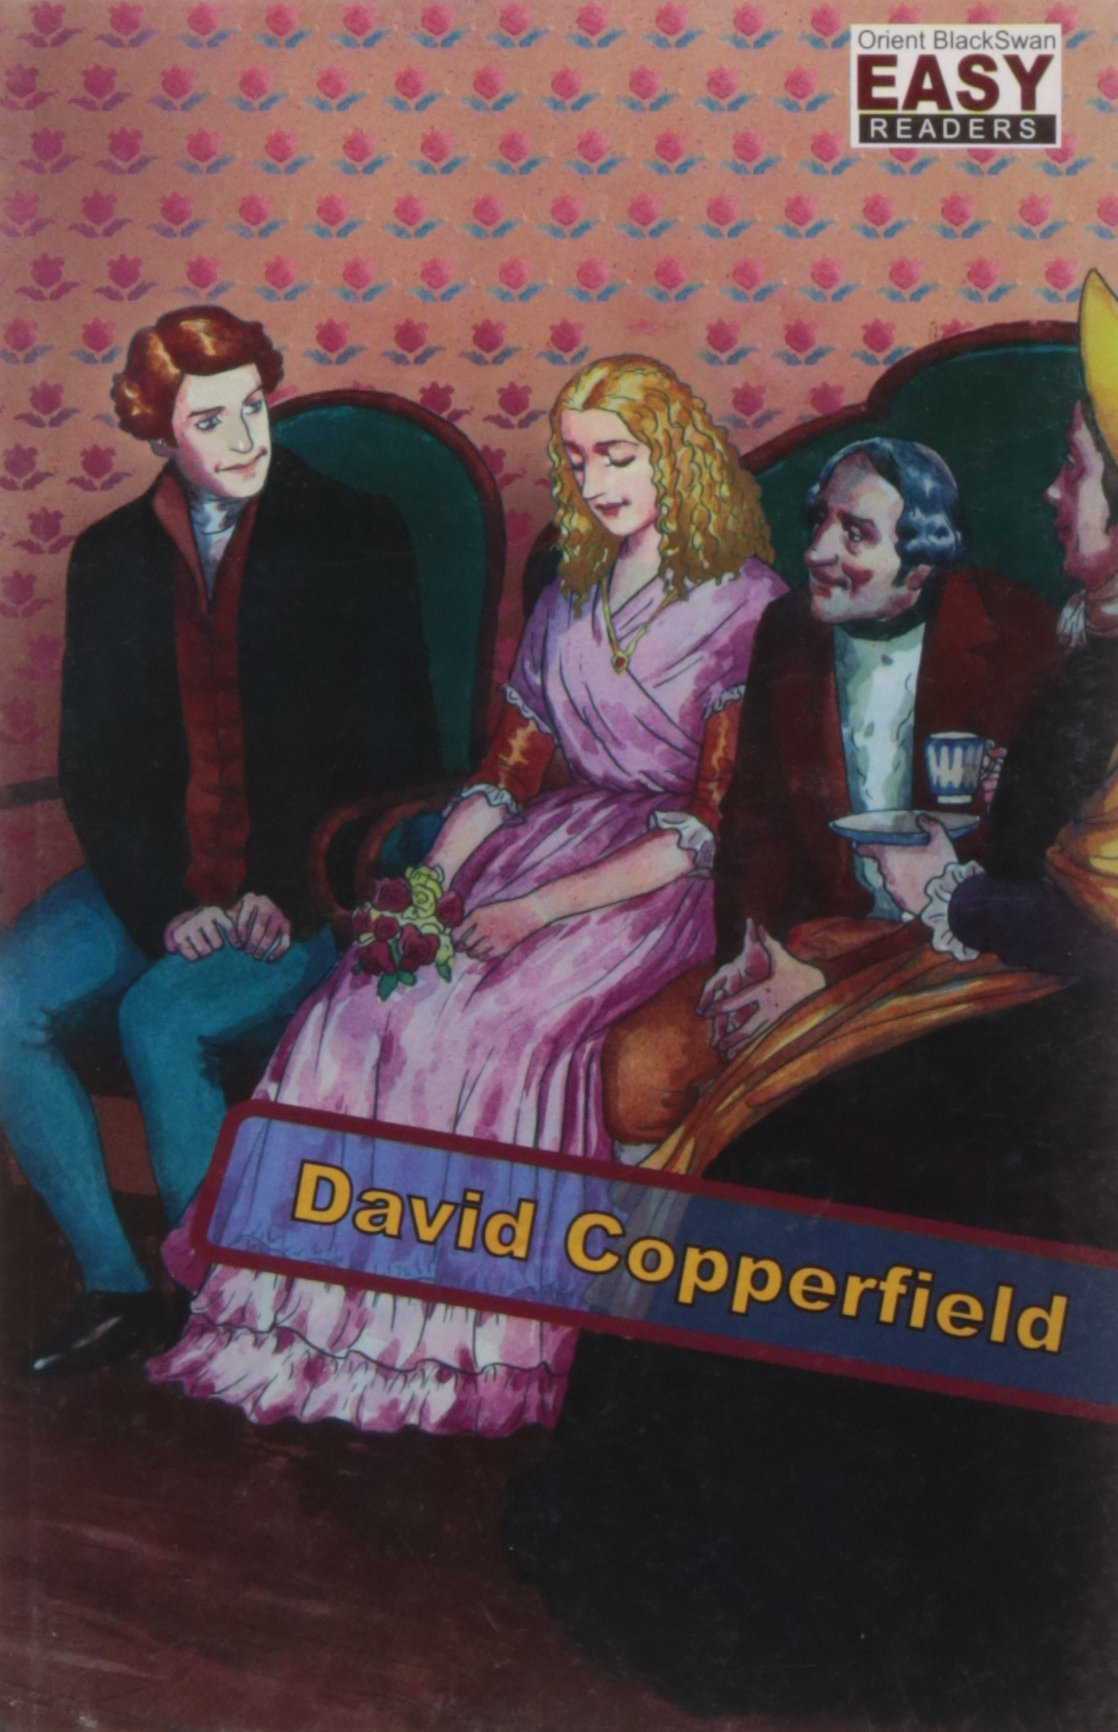 david copperfield novel summary book report on david copperfield  david copperfield ober grade orient blackswan easy readers david copperfield ober grade 6 orient blackswan easy